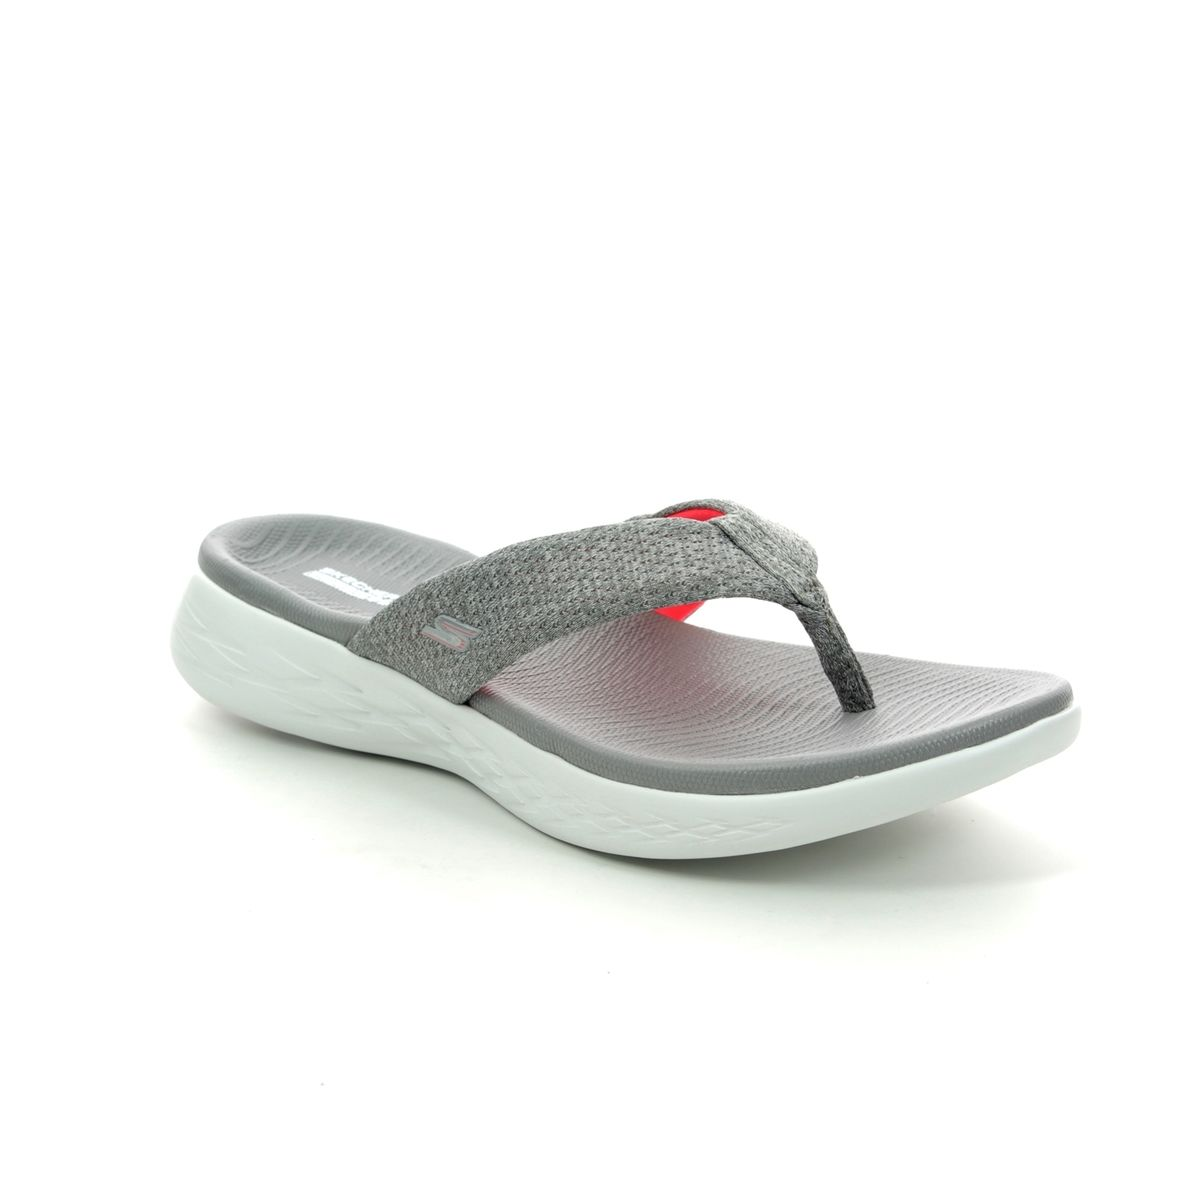 5e9ed311 Skechers Preferred 15304 GYPK Grey croc Toe Post Sandals